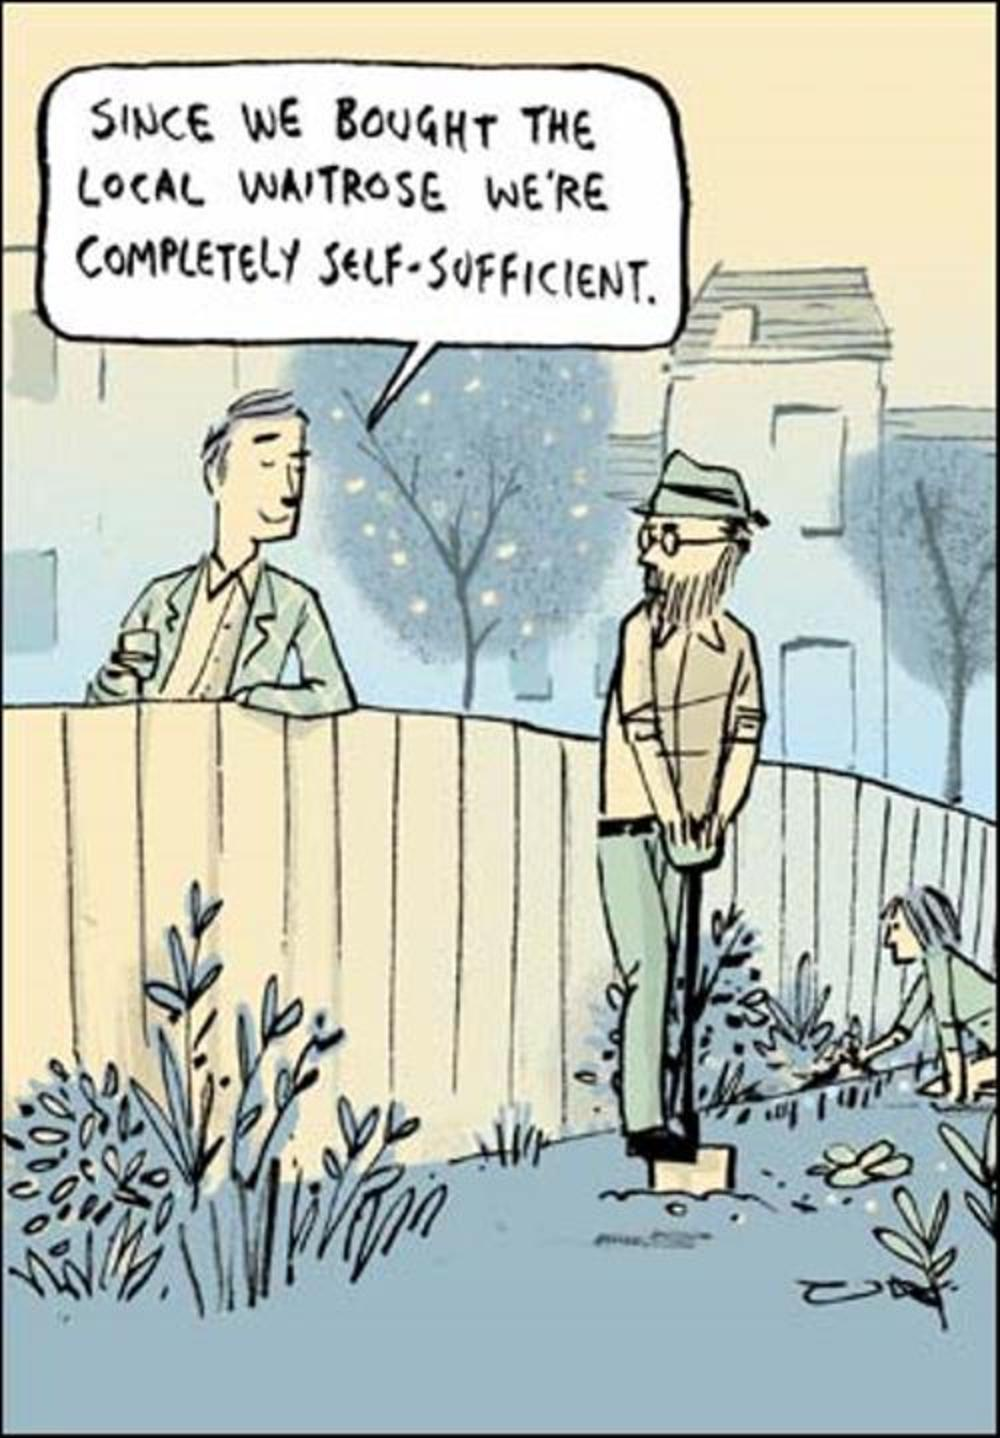 We're Completely Self Sufficient Funny Berger & Wyse Card